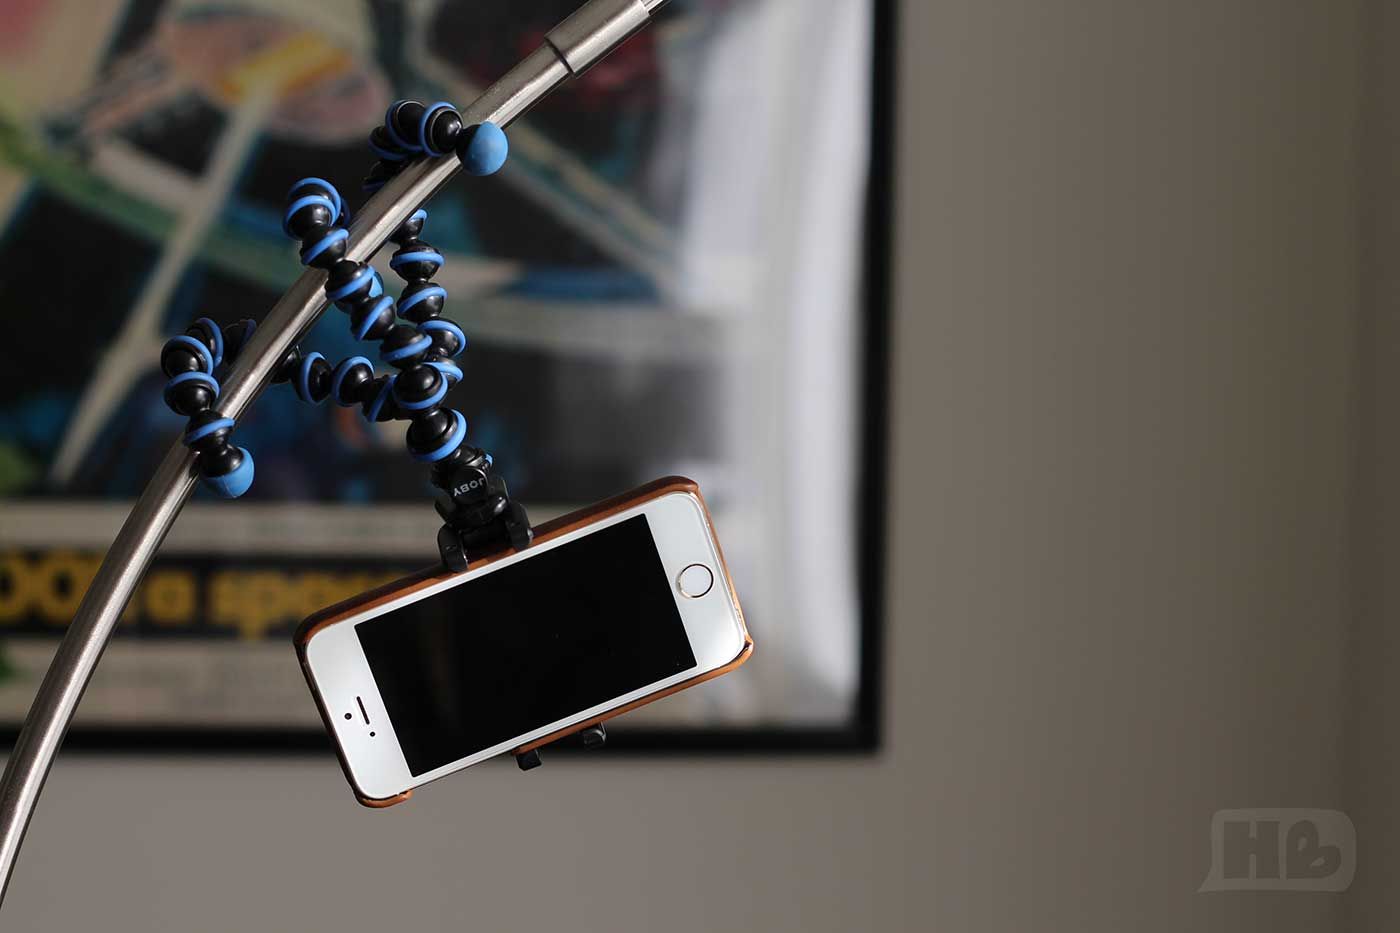 Equipment for illustration and lettering - Joby Griptight Mount for iPhone - hellobrio.com